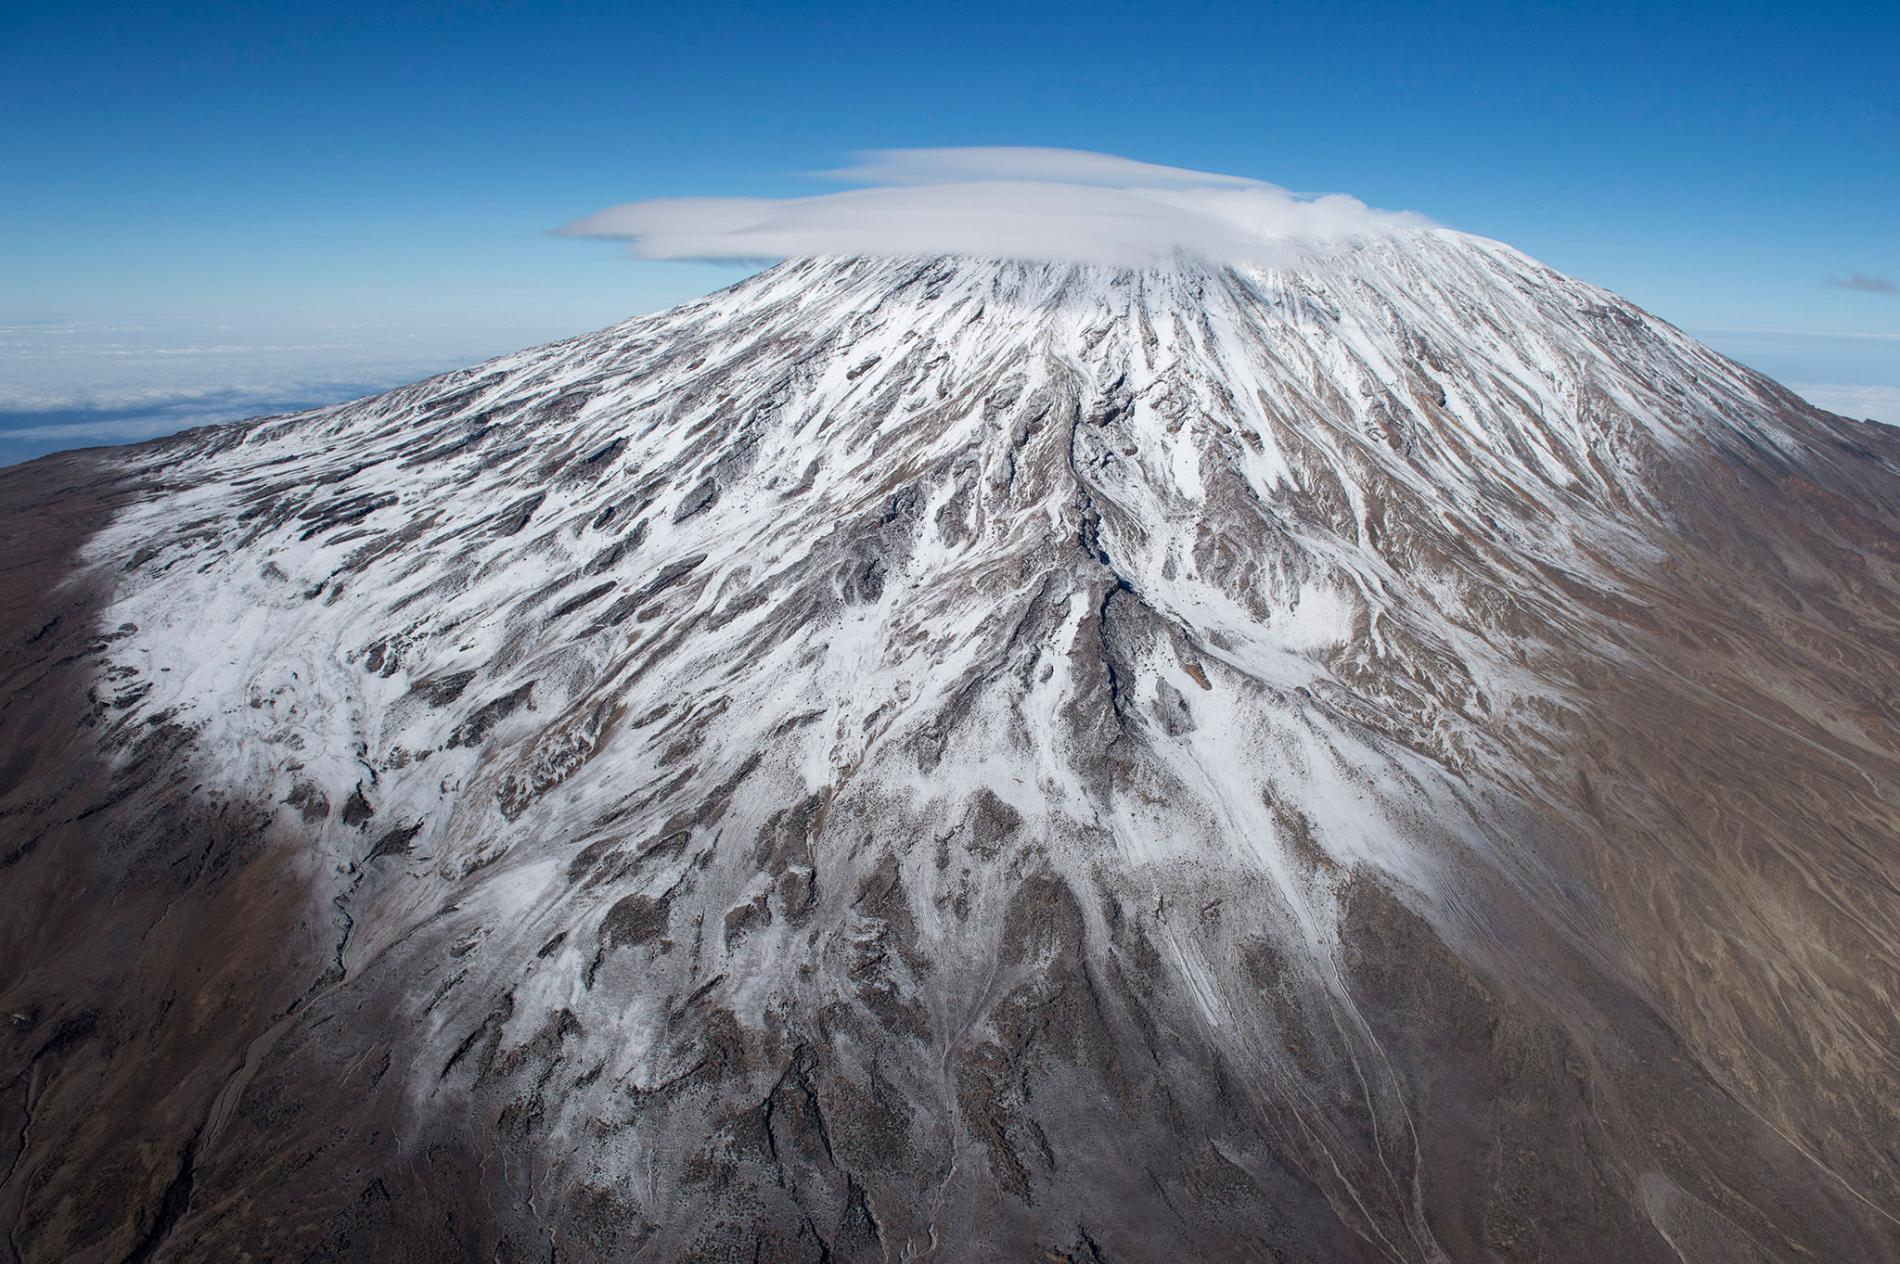 kilimanjaro-aerial-view-mountain-ngsversion-1470694013430-adapt-1900-1